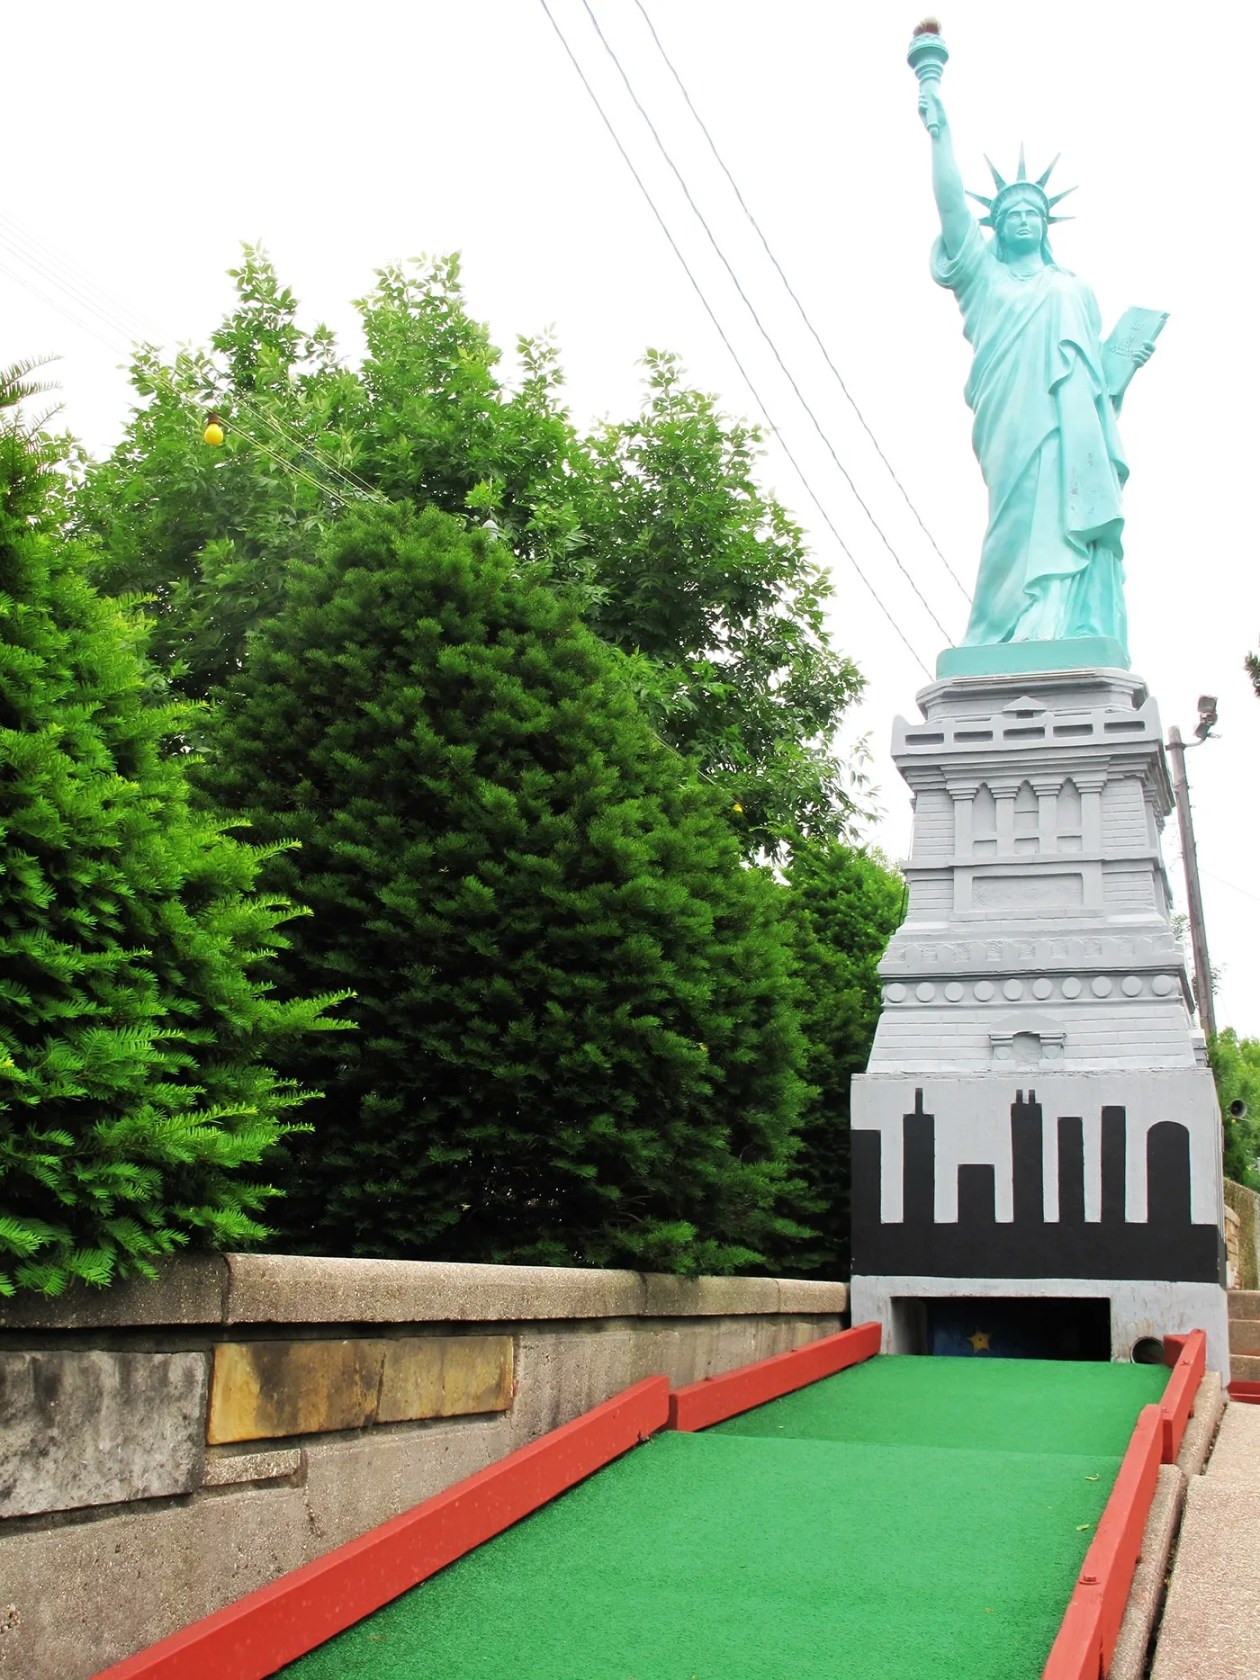 Statue of Liberty at Novelty Golf in Lincolnwood, Illinois.